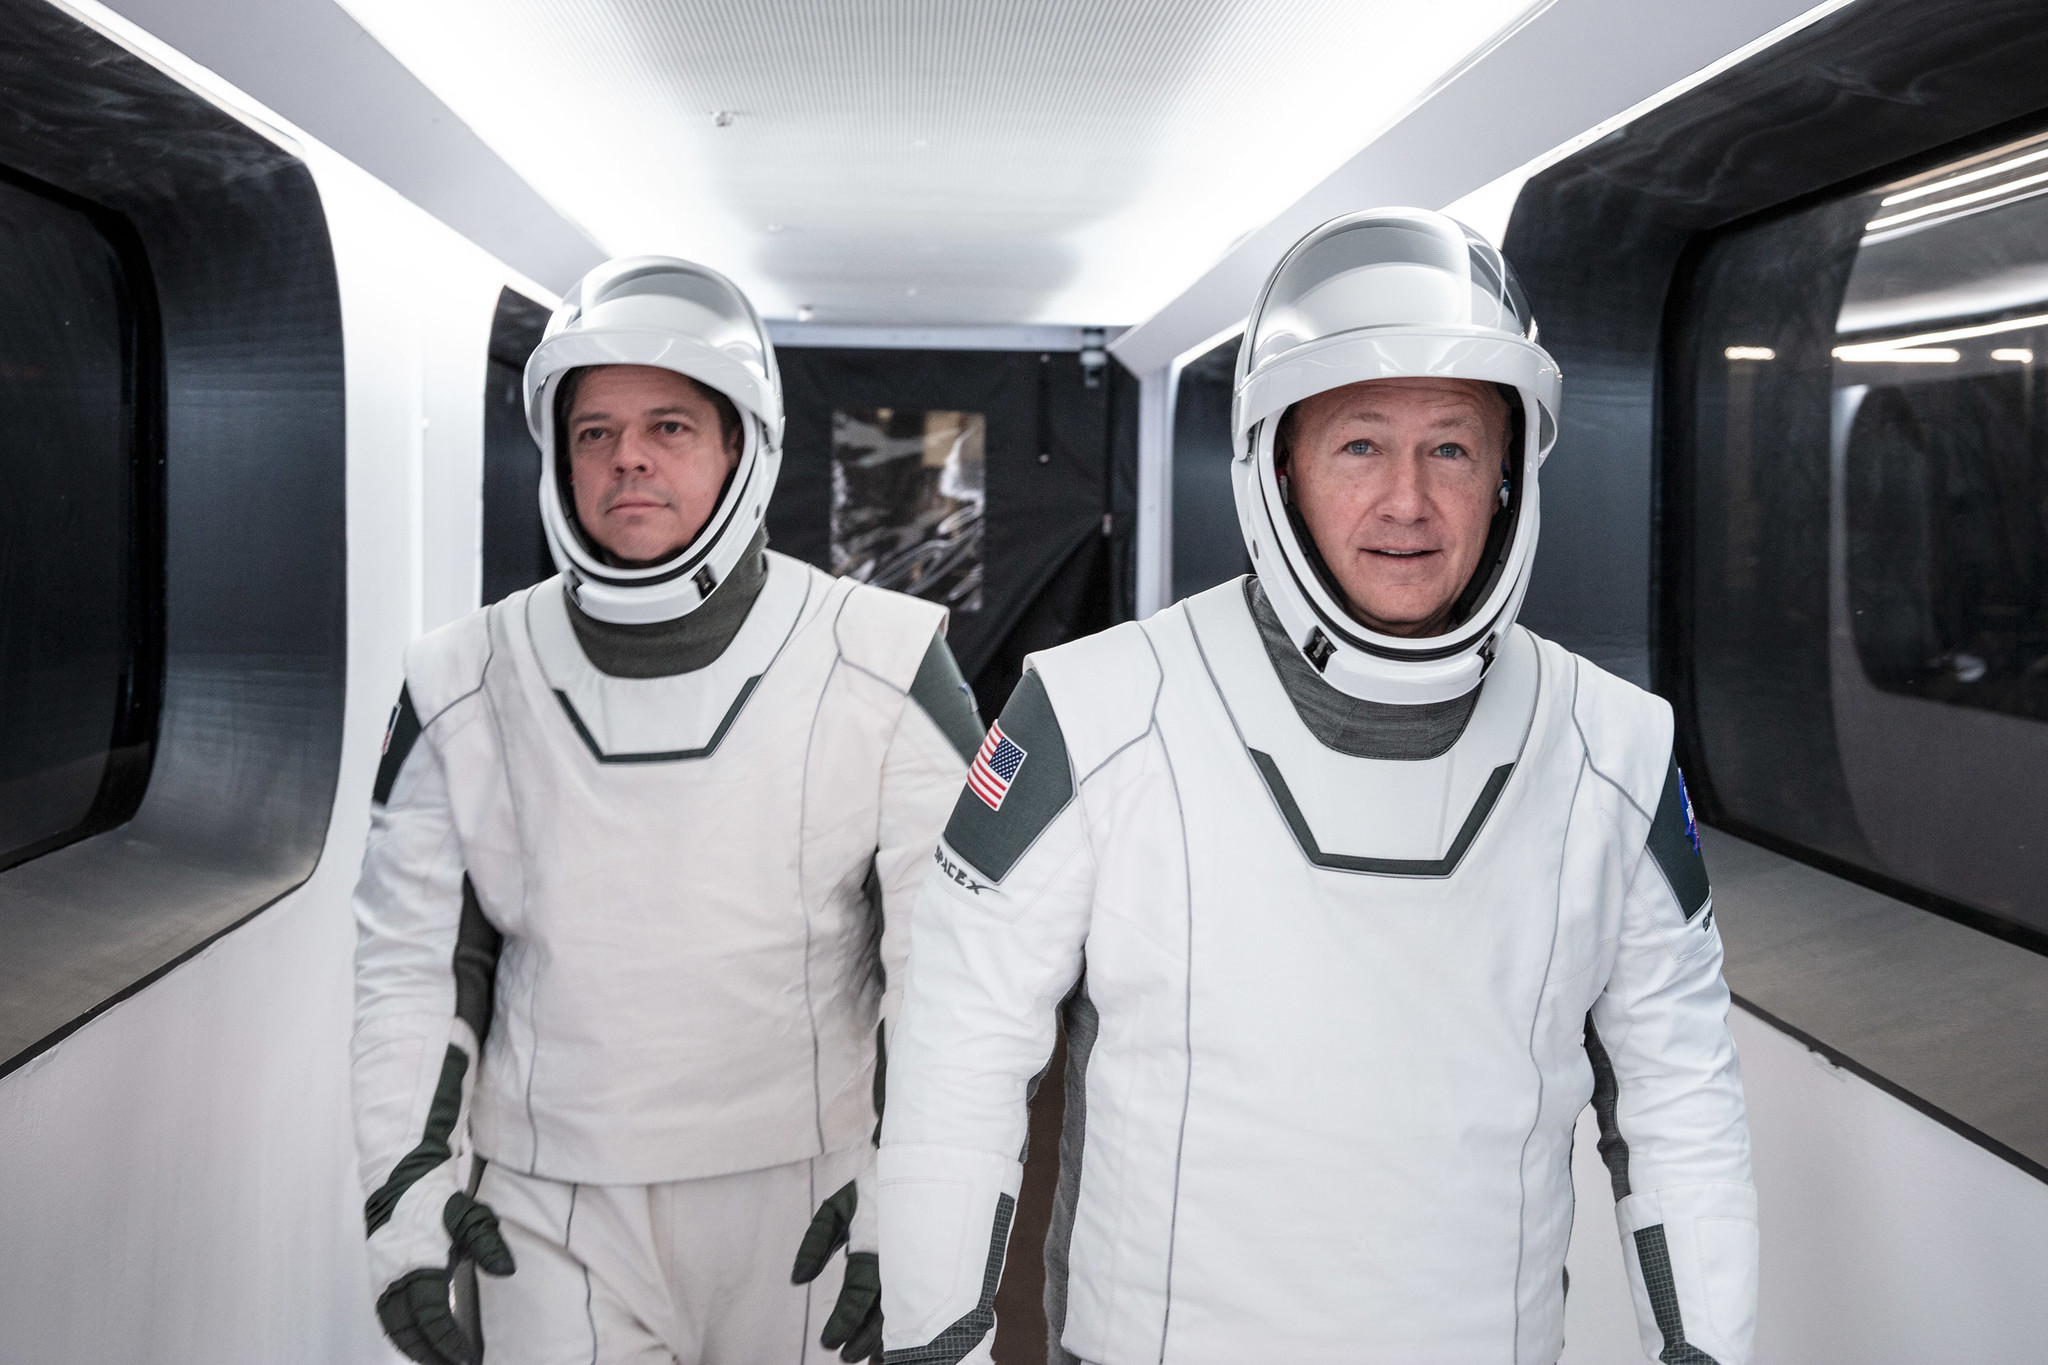 Bob and Doug in SpaceX suits